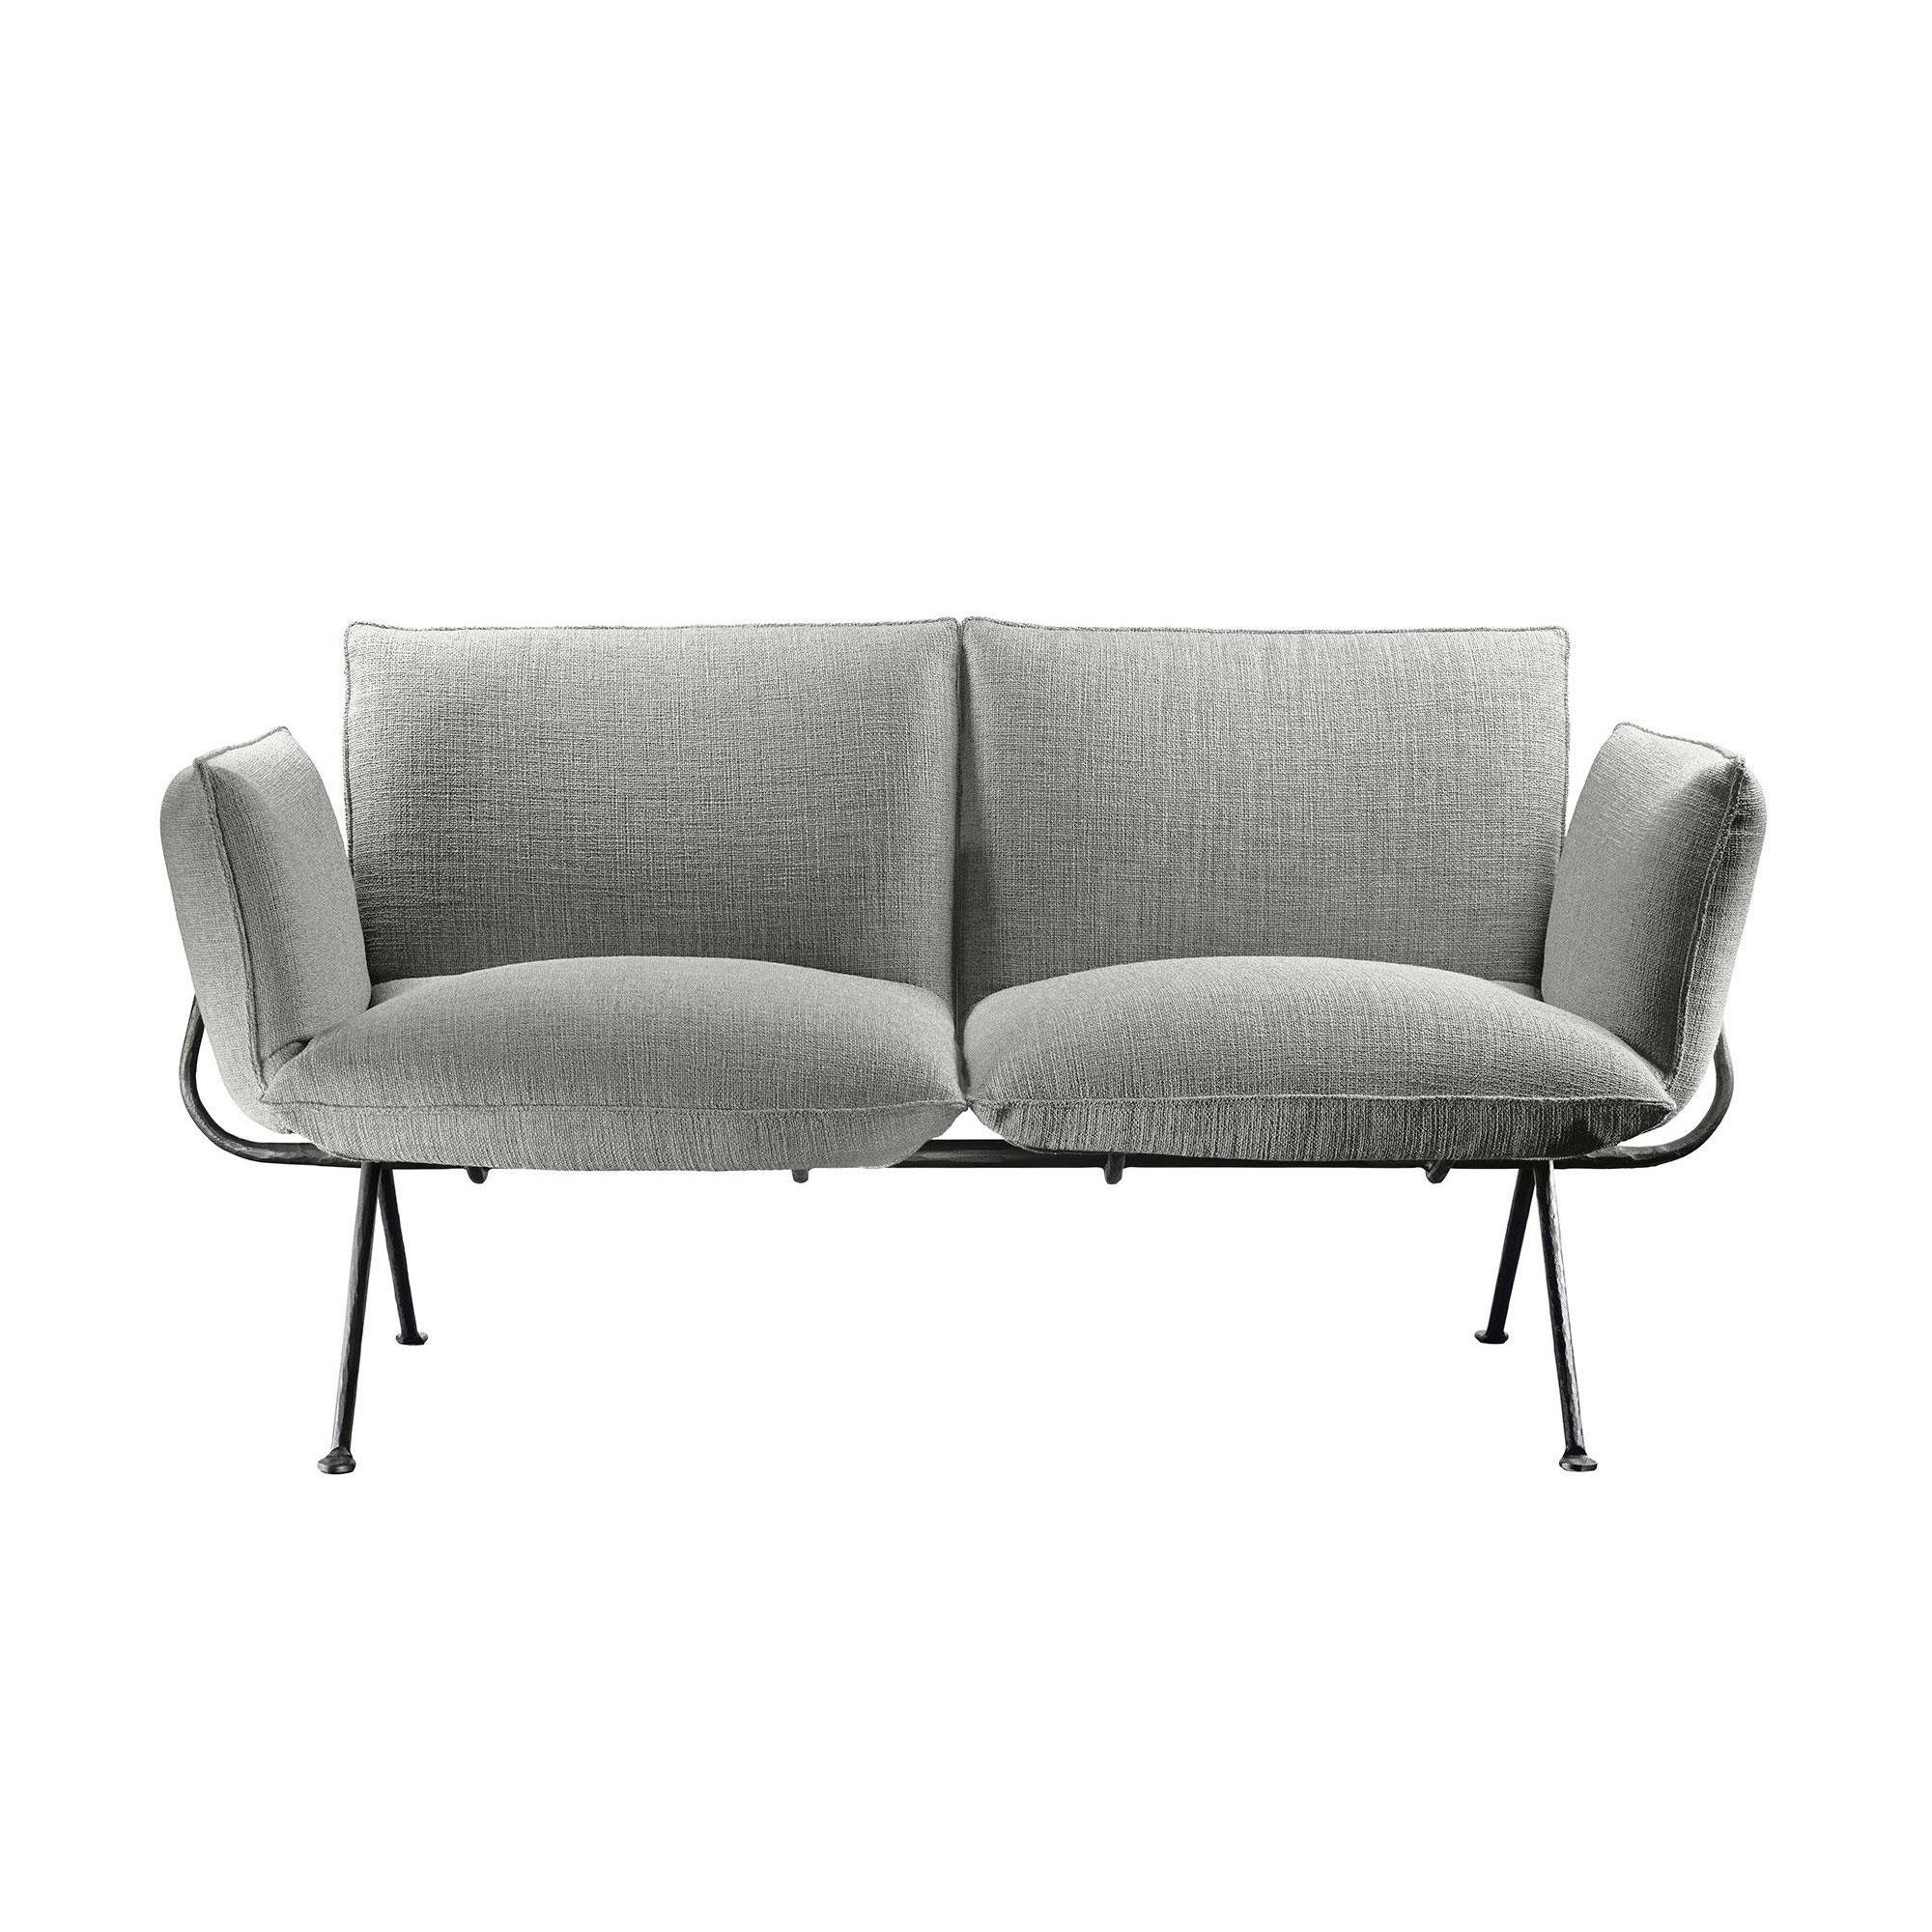 Magis Officina 2 Sitzer Sofa Ambientedirect